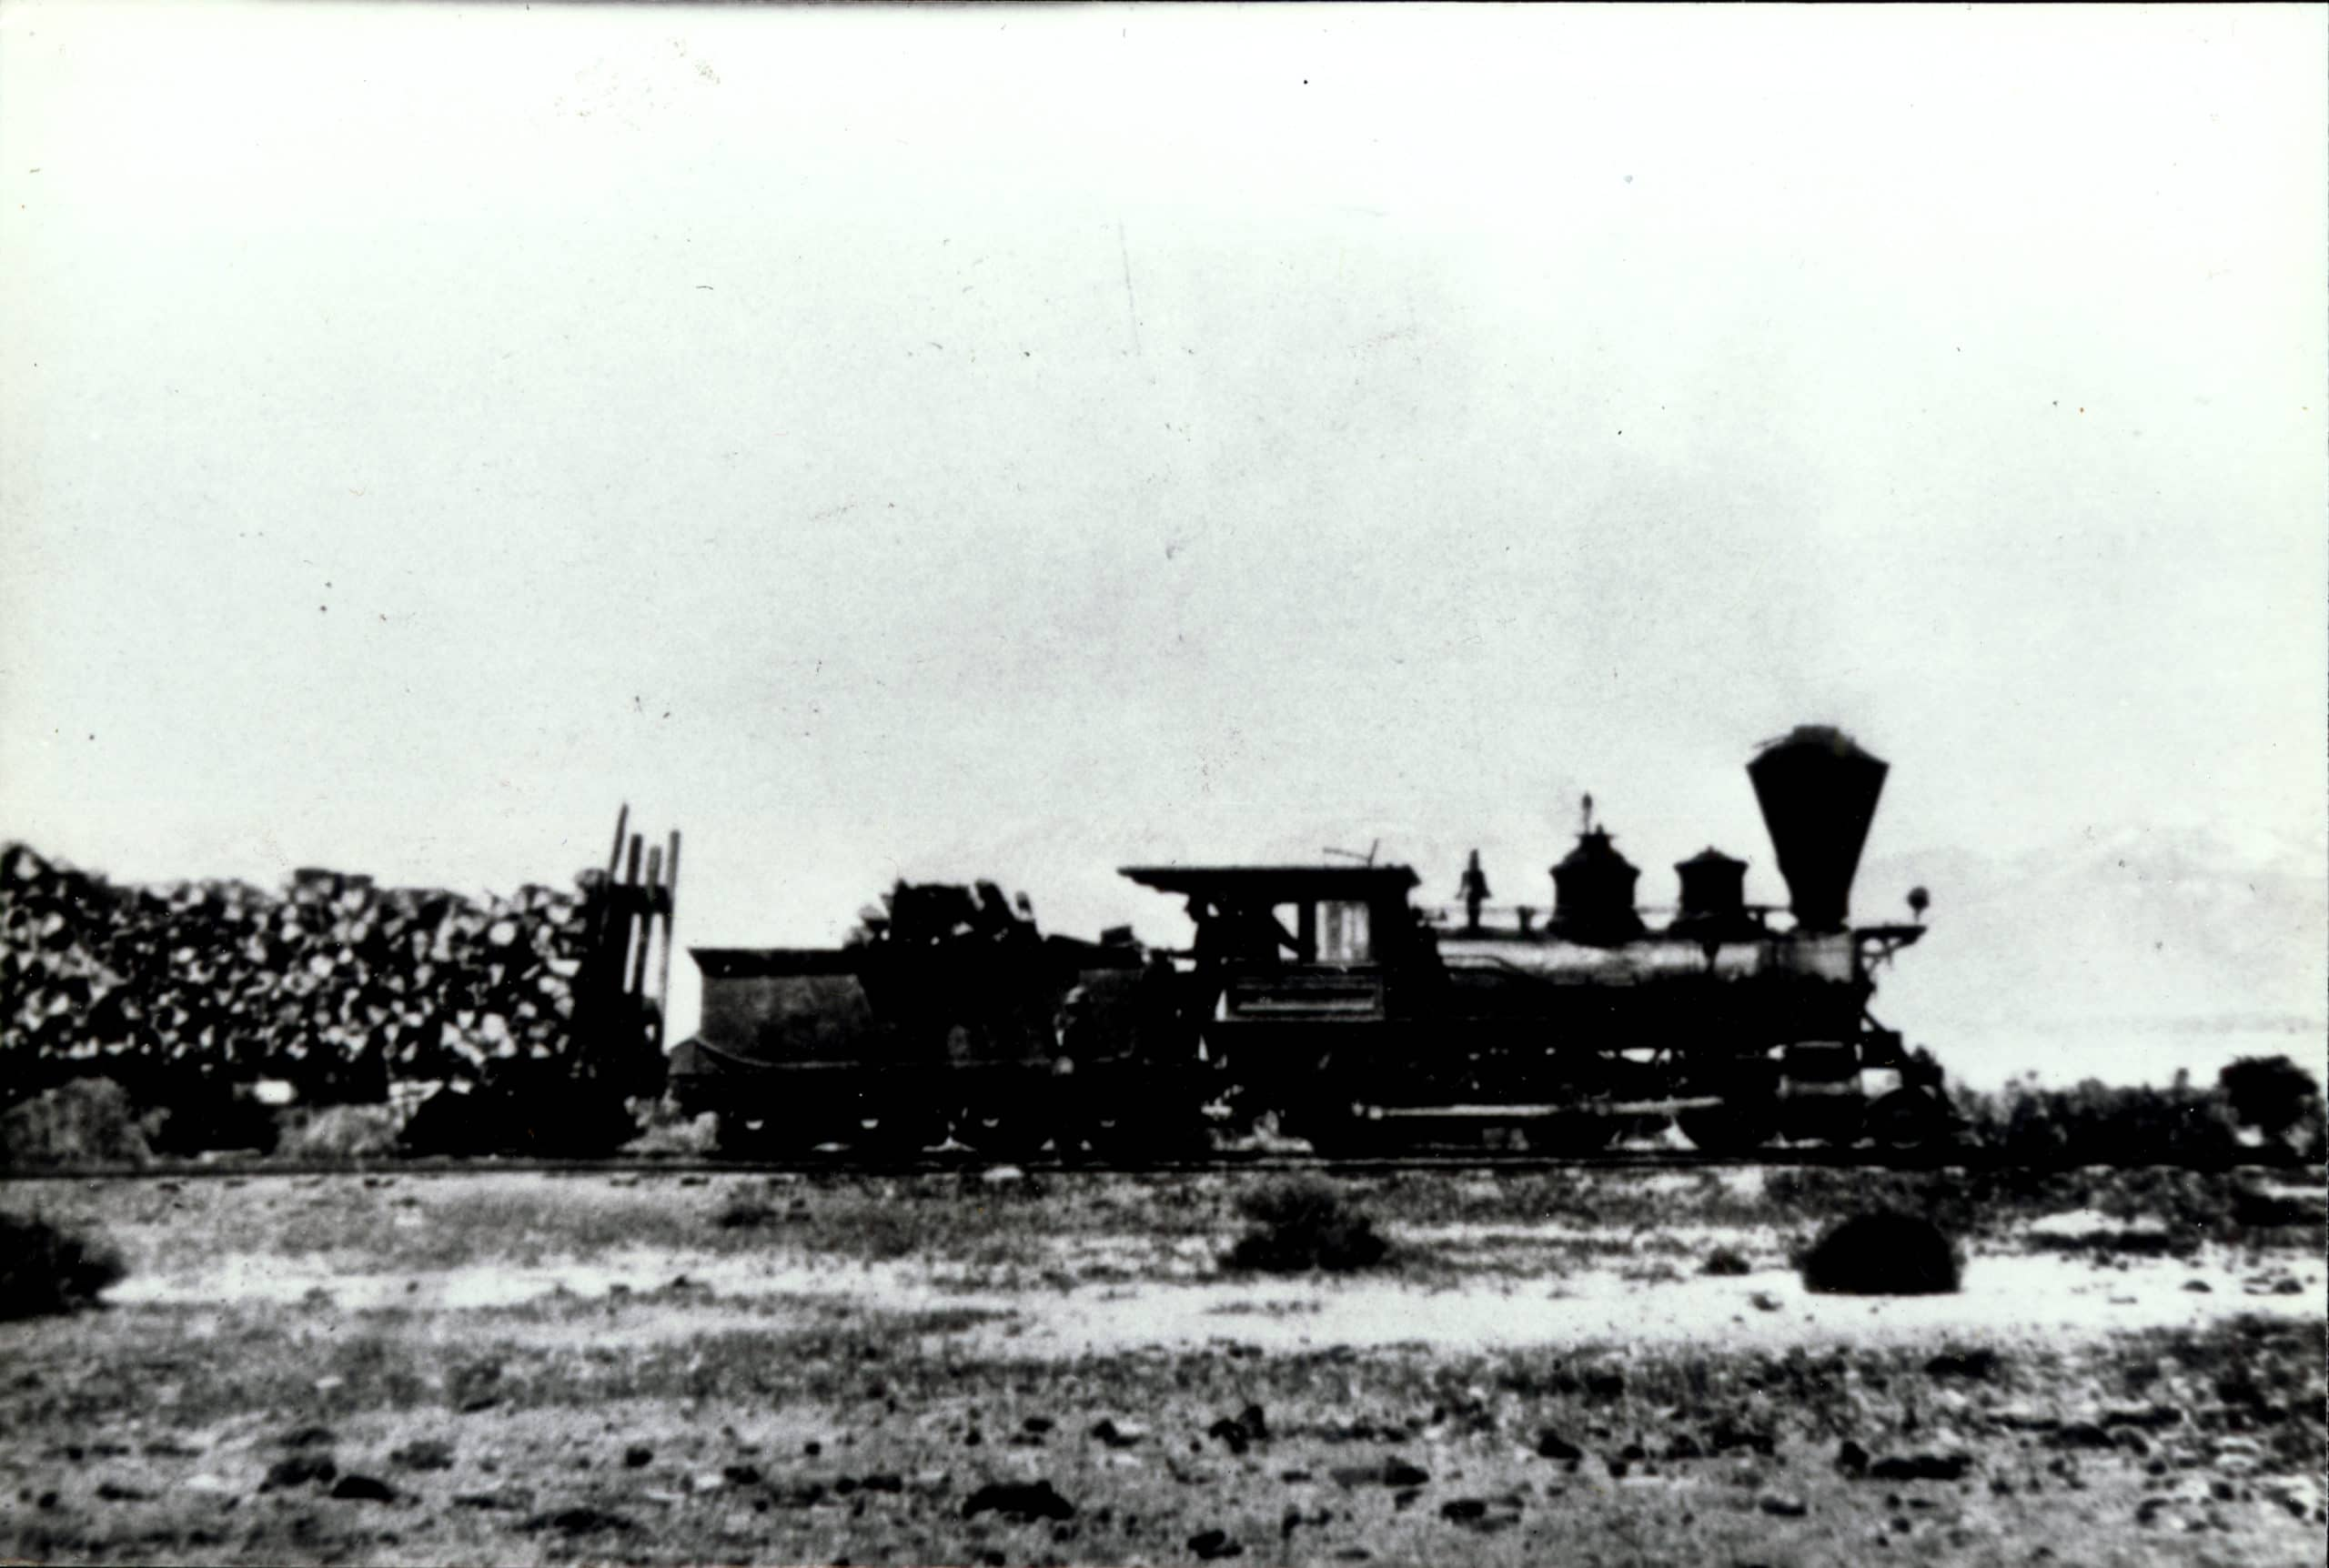 Black and white image of a locomotive carrying a load of logs.